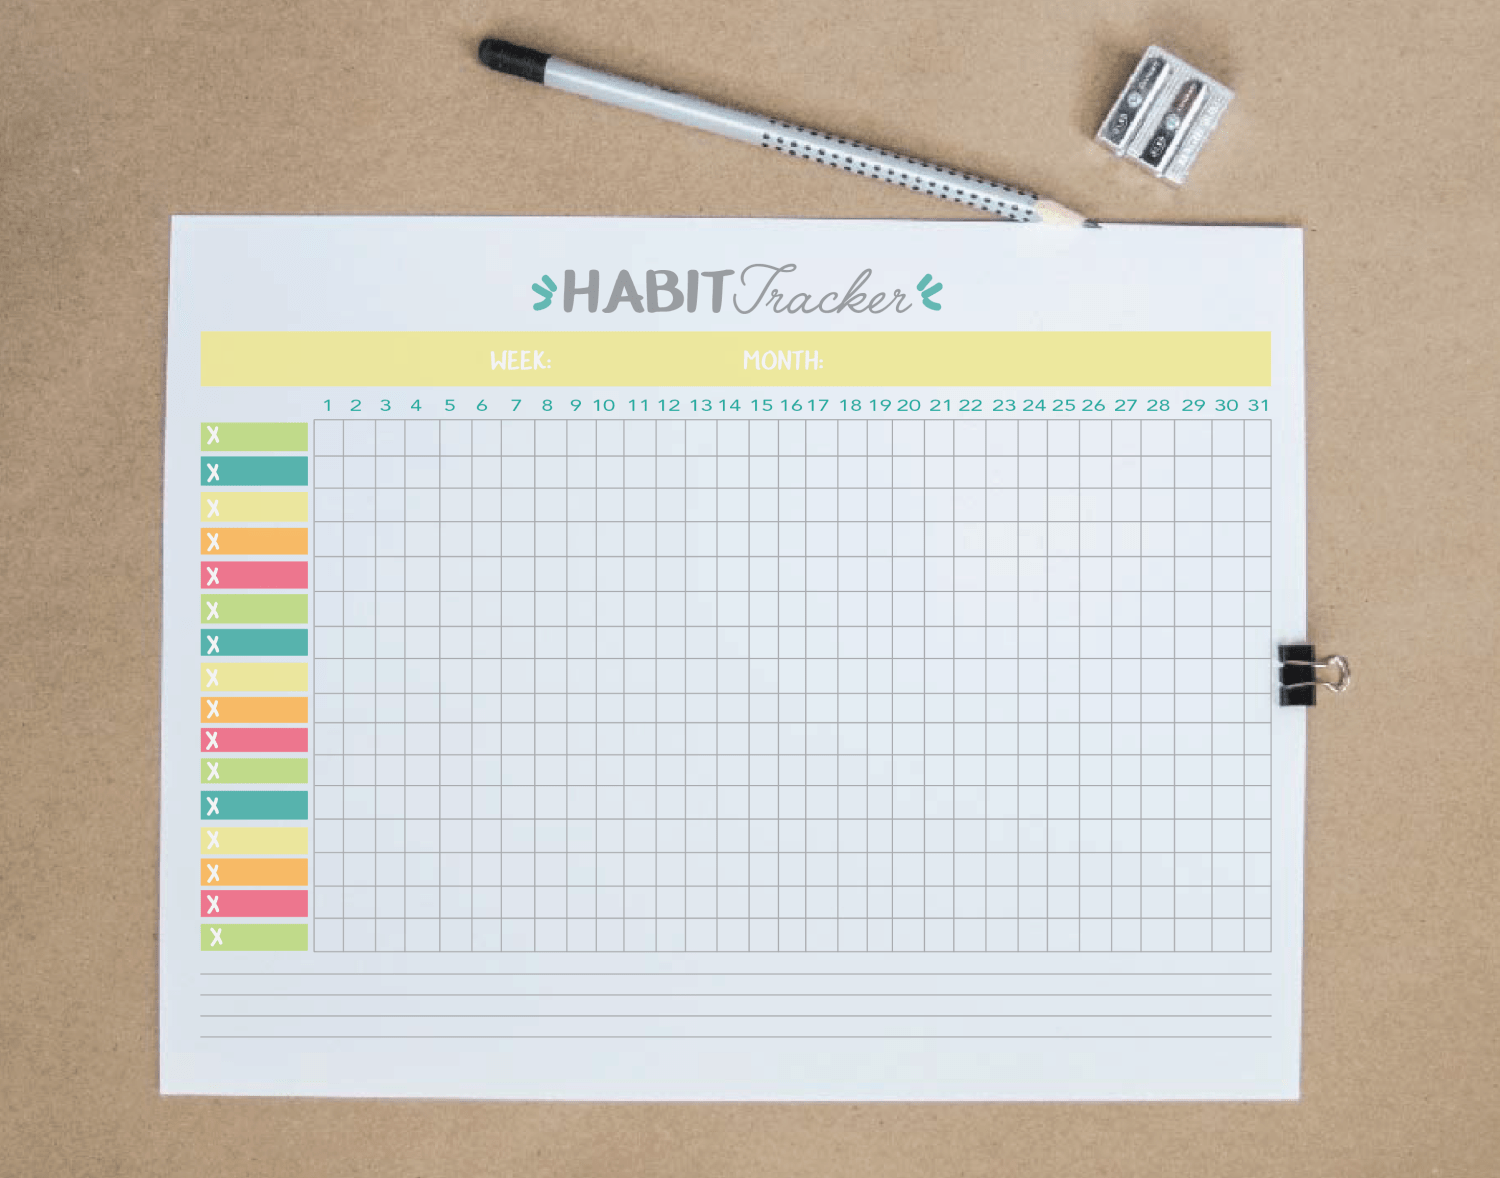 Free Printable Habit Tracker Pdf The Ultimate Habit Tracker Guide Habit Tracker Bullet Journal Bullet Journal Layout Bullet Journal Tracker